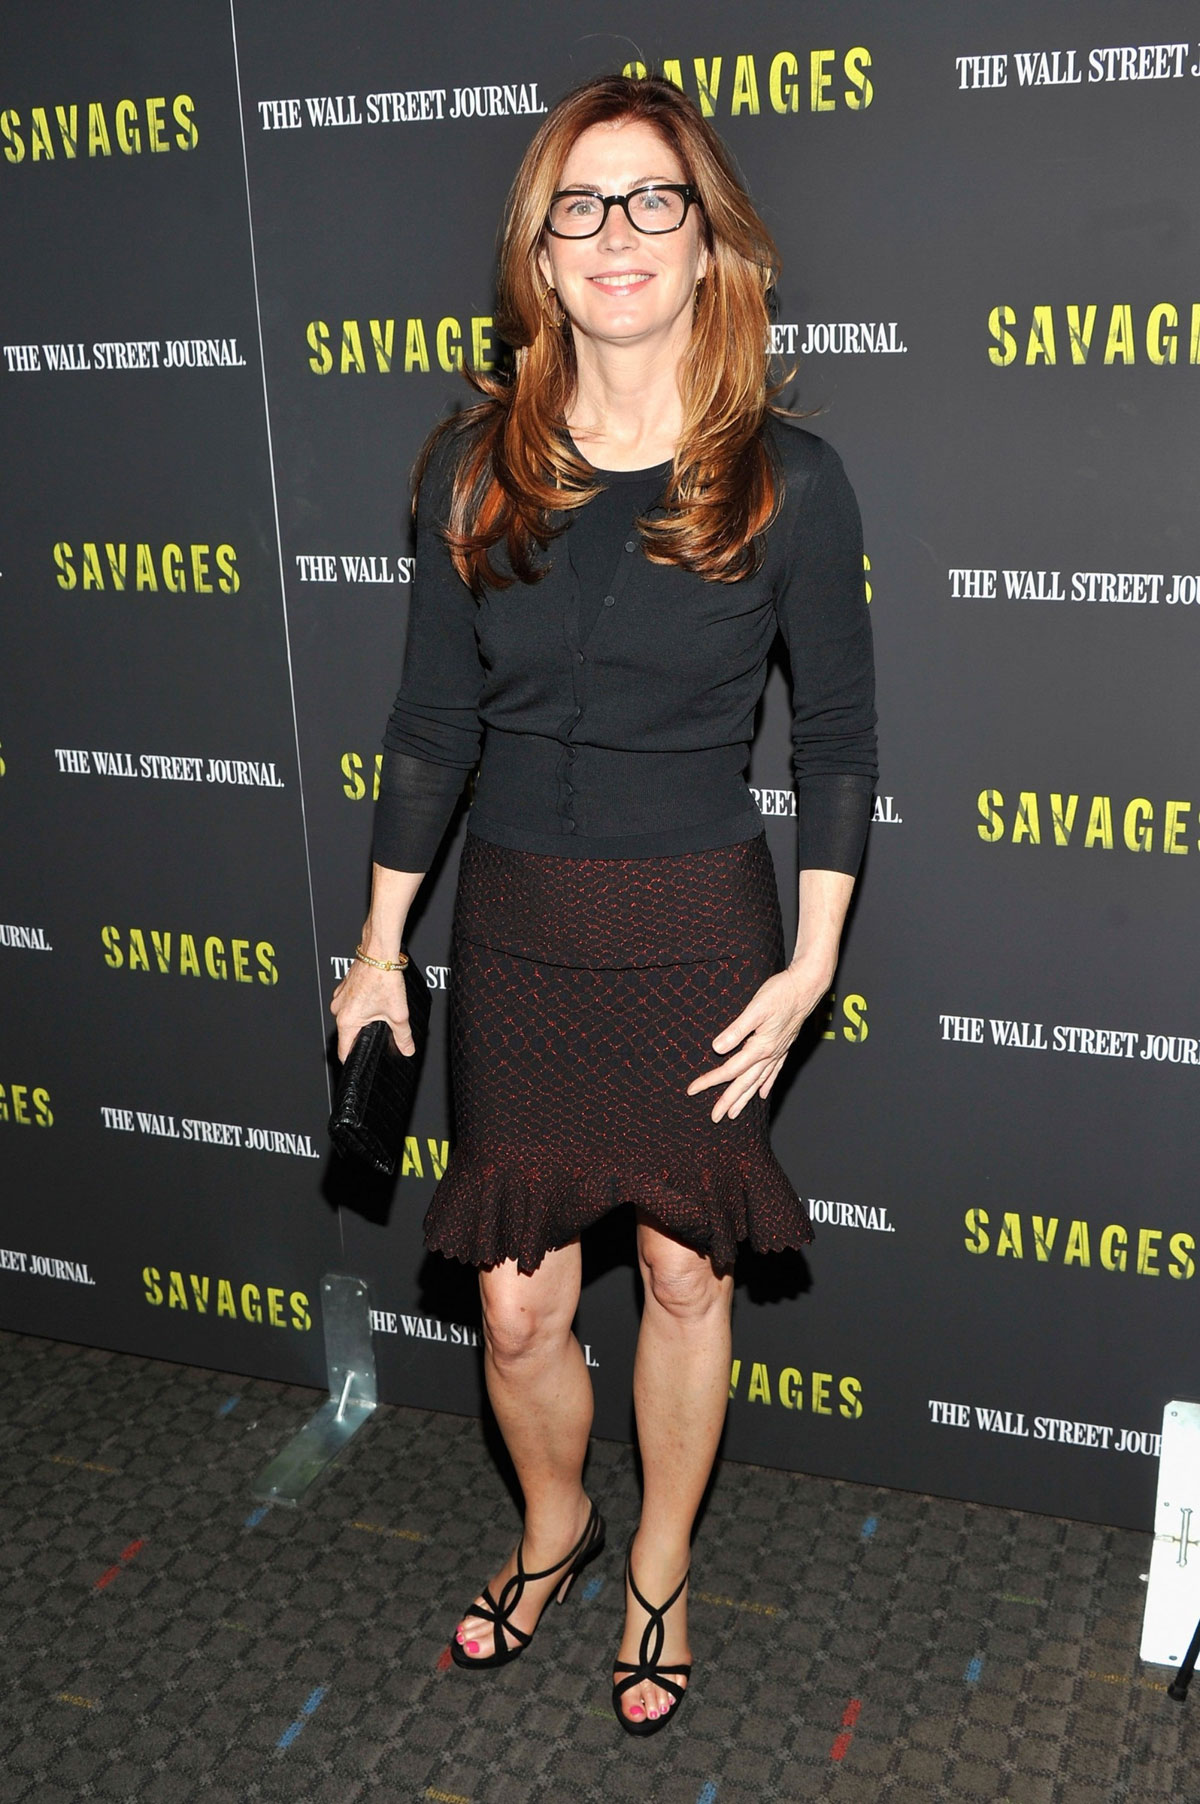 DANA DELANY at Savages Premiere in New York - HawtCelebs